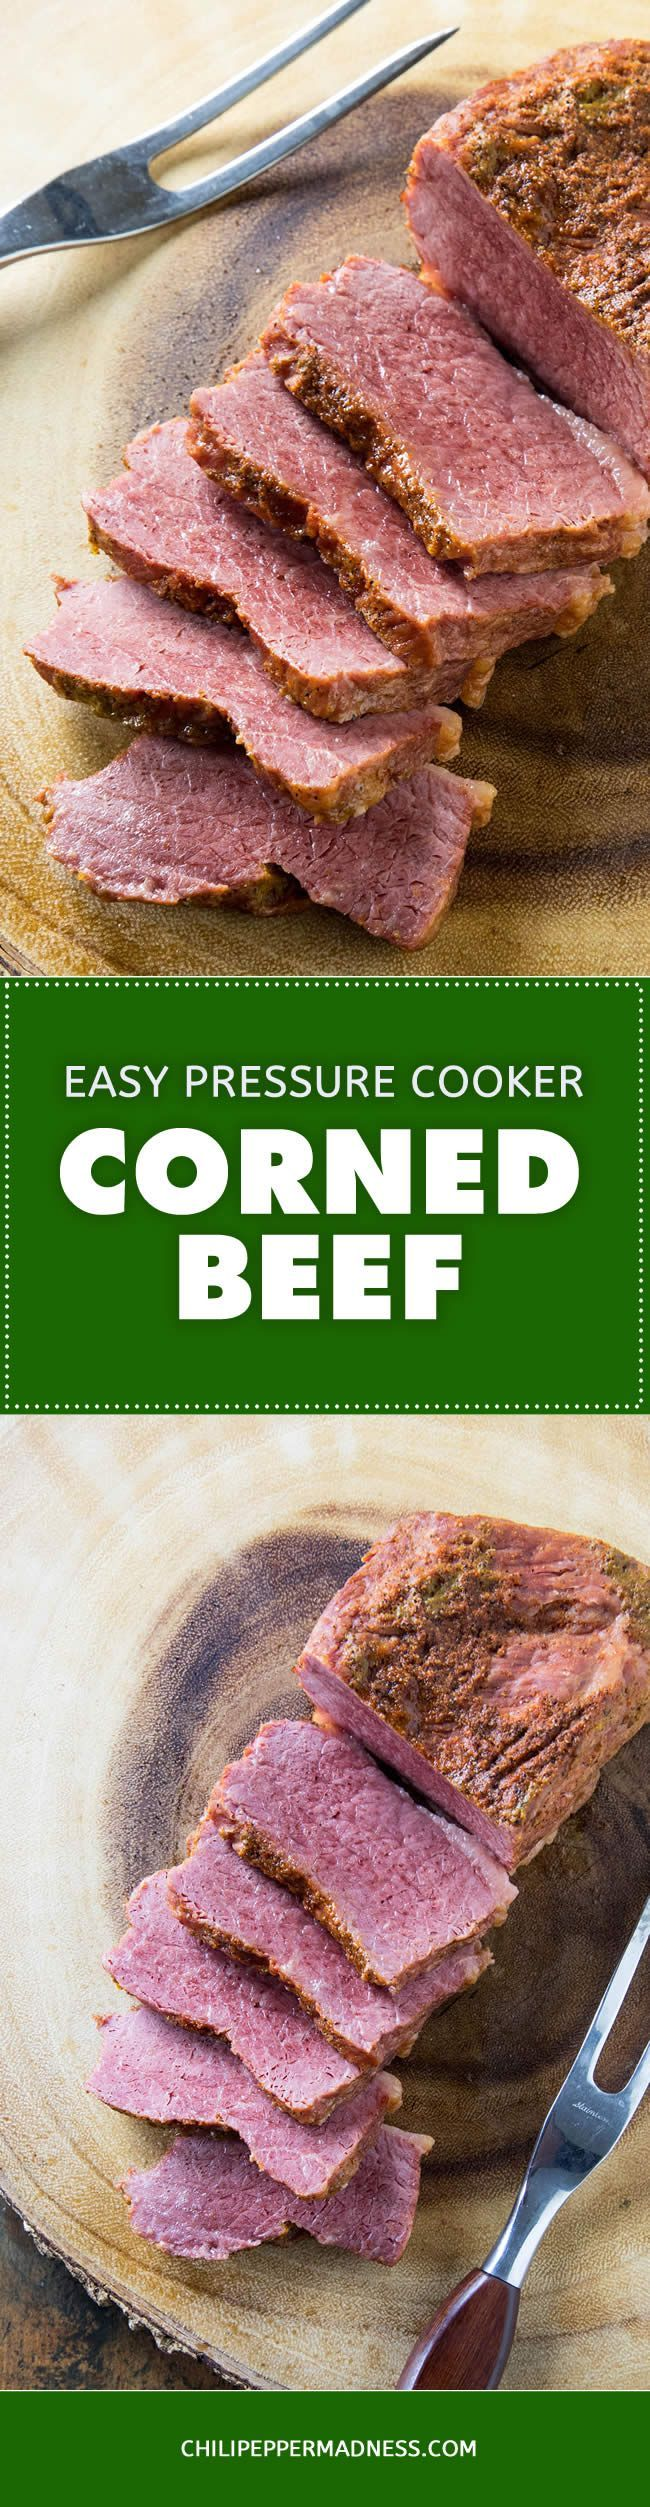 Pressure Cooker Corned Beef – The Recipe - This recipe and a pressure cooker are all you need for the juiciest, most tender corned beef brisket in a fraction of the time it takes for oven or slow cooking. Don't forget to cut against the grain. Serve it up with cabbage or your favorite side dish.  #cornedbeef #StPatricksDay #pressurecooker #cooking #recipe #recipeoftheday #recipeideas #recipesharing